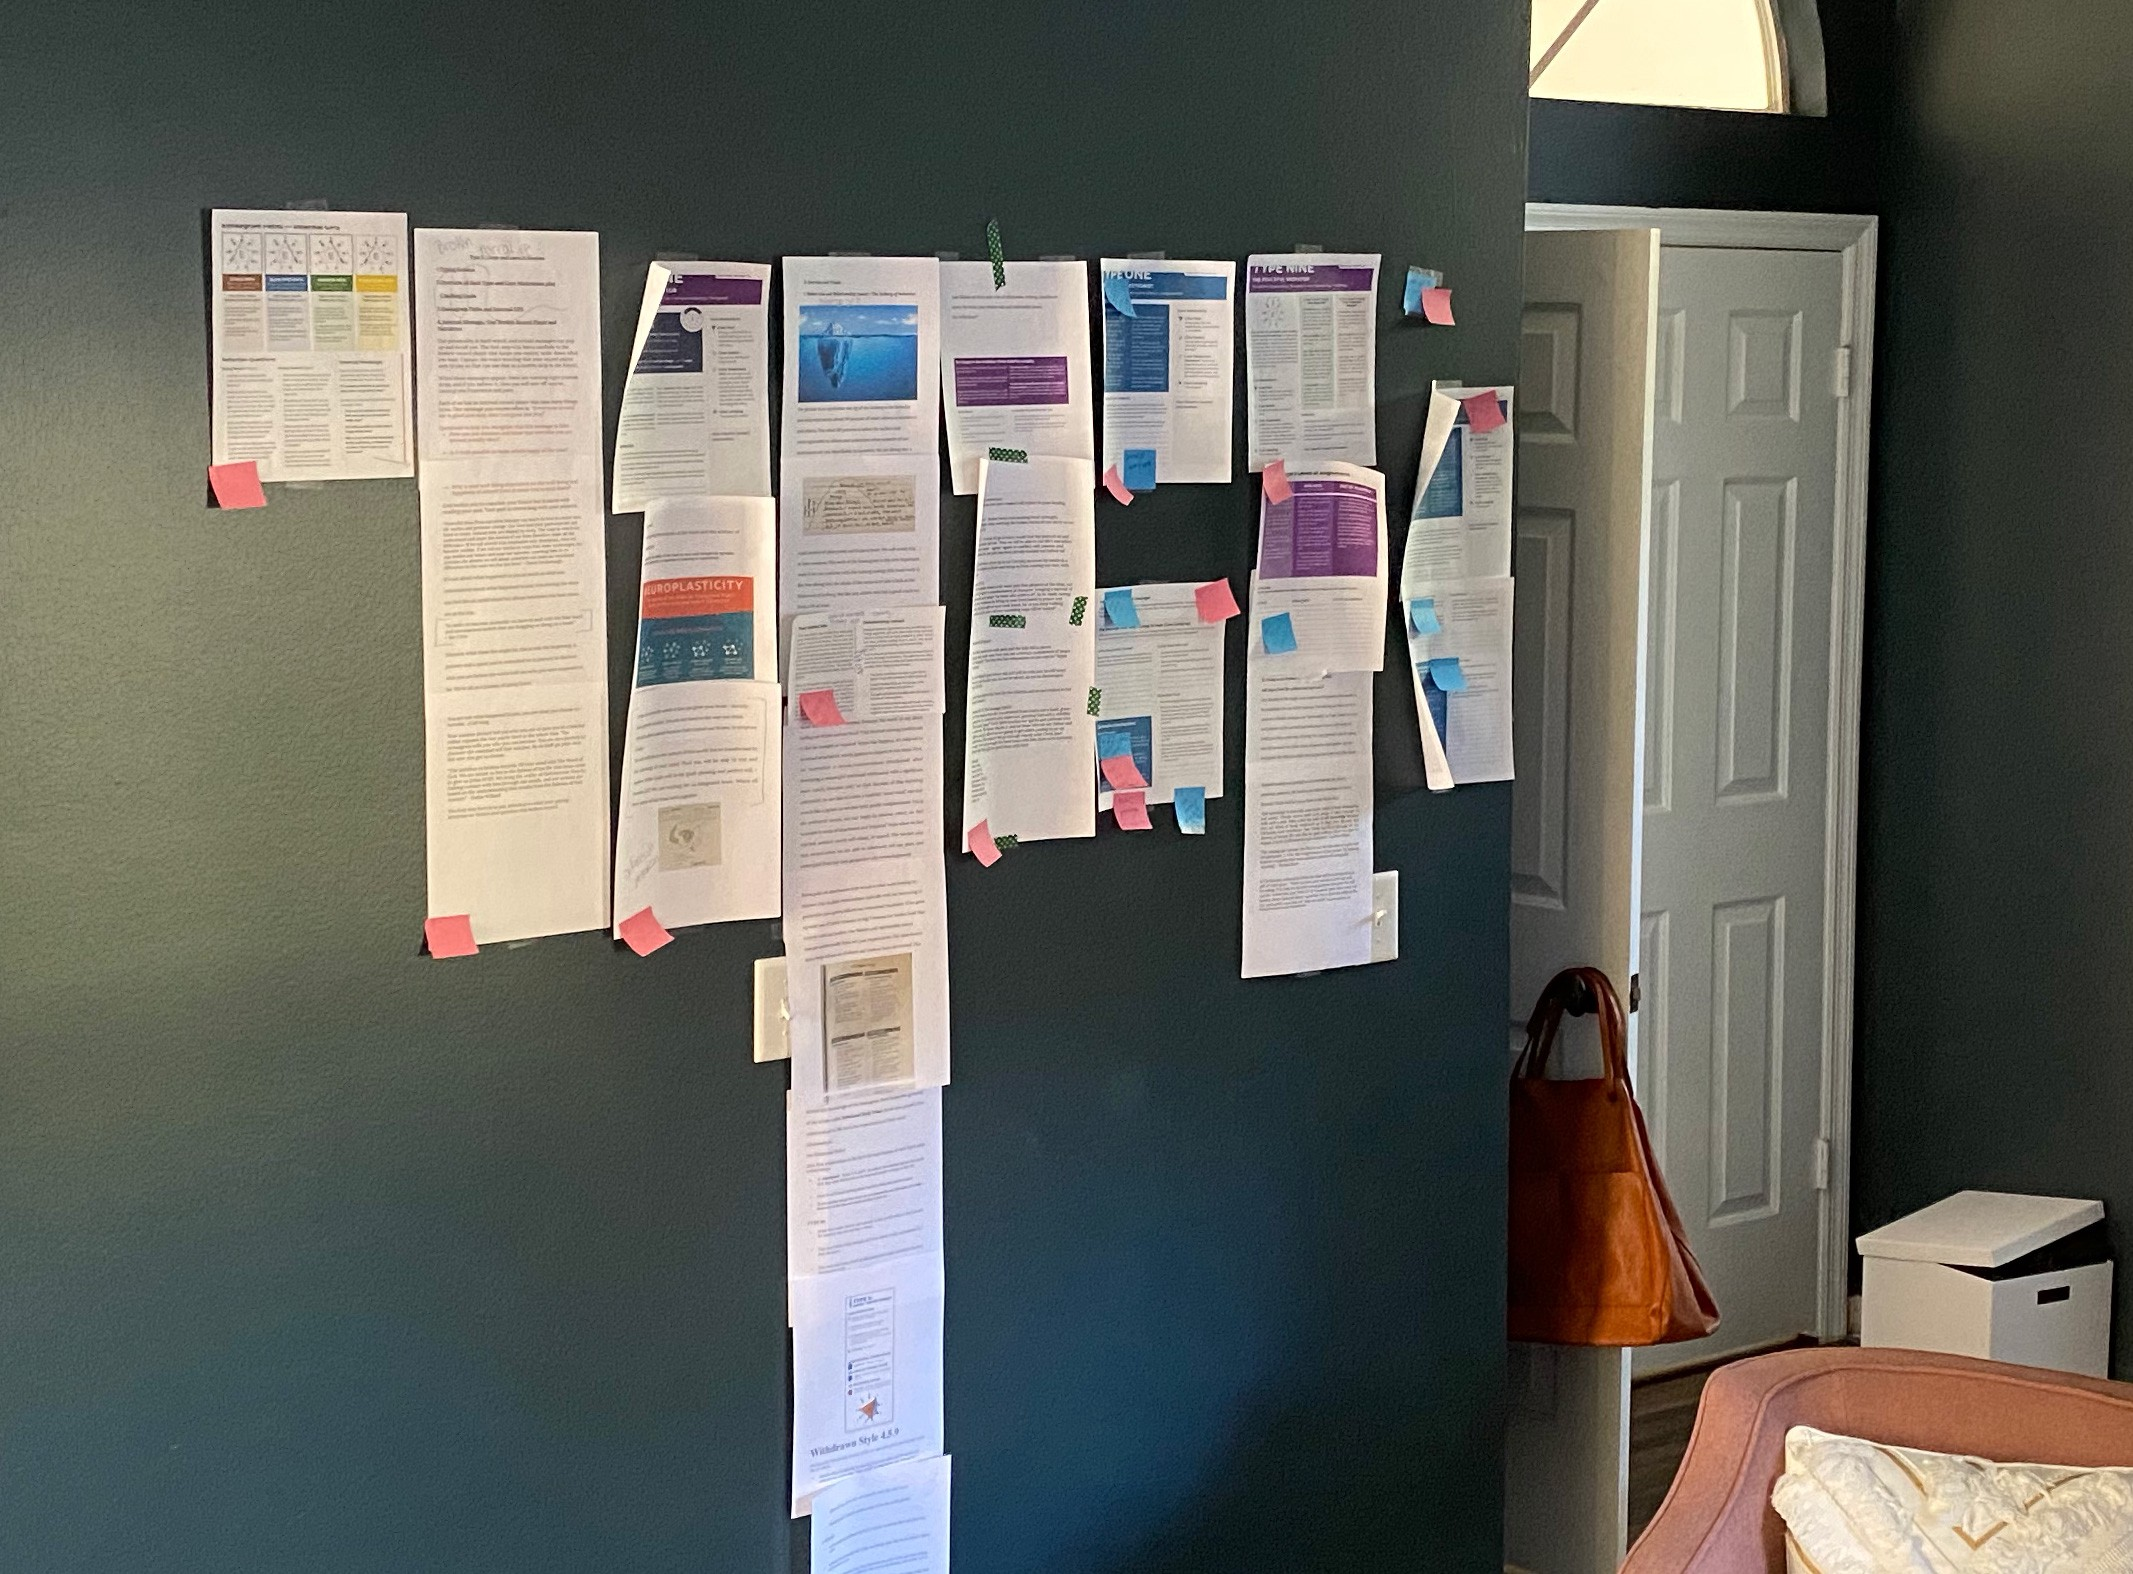 Printed out pages taped to wall